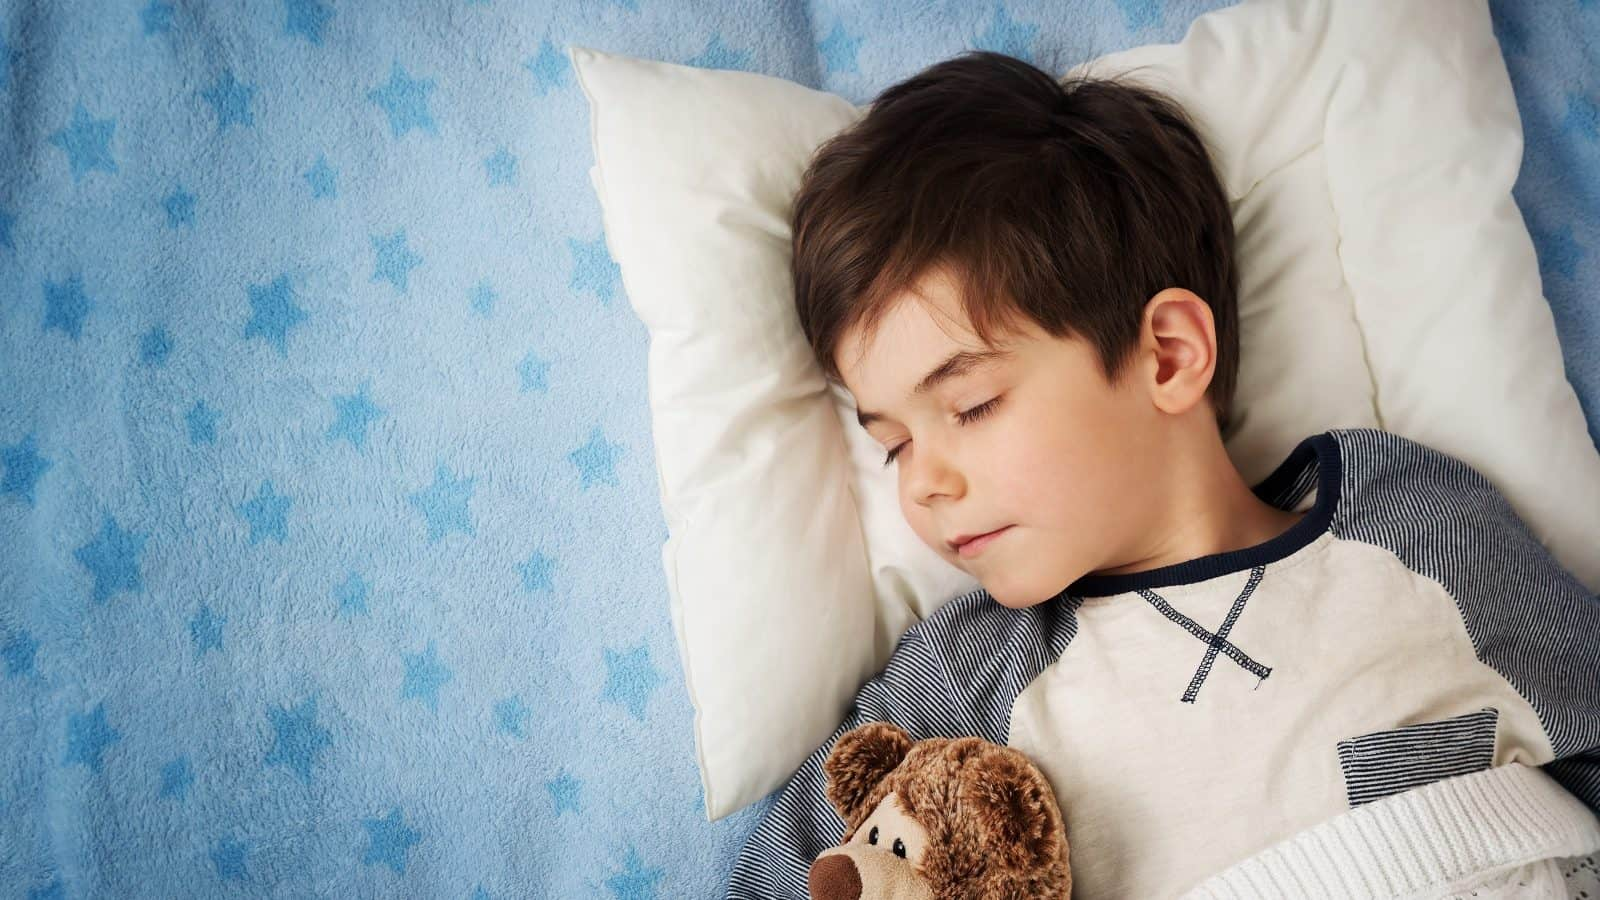 How to Stop Night Terrors of kid